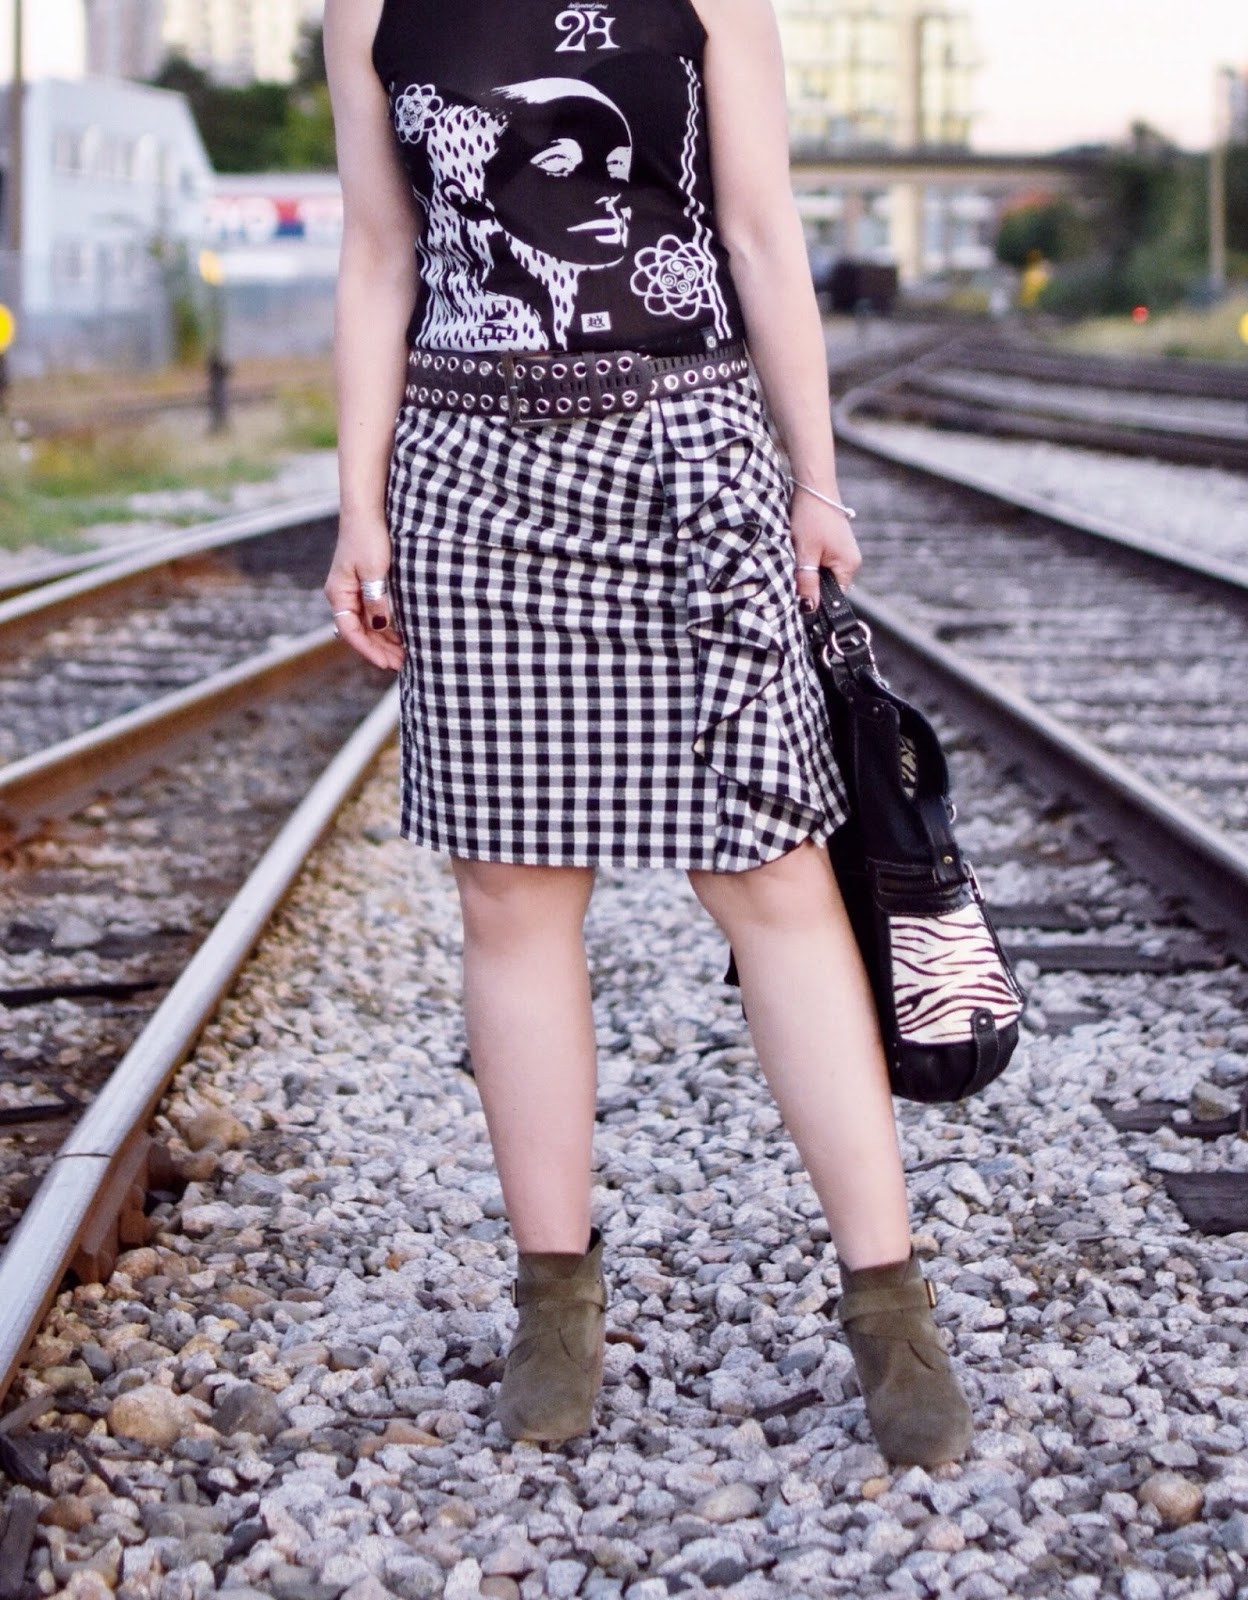 Monika Faulkner outfit inspiration - black and white graphic tank top and gingham skirt, brown grommet-embellished belt, olive suede booties, zebra-patterned satchel